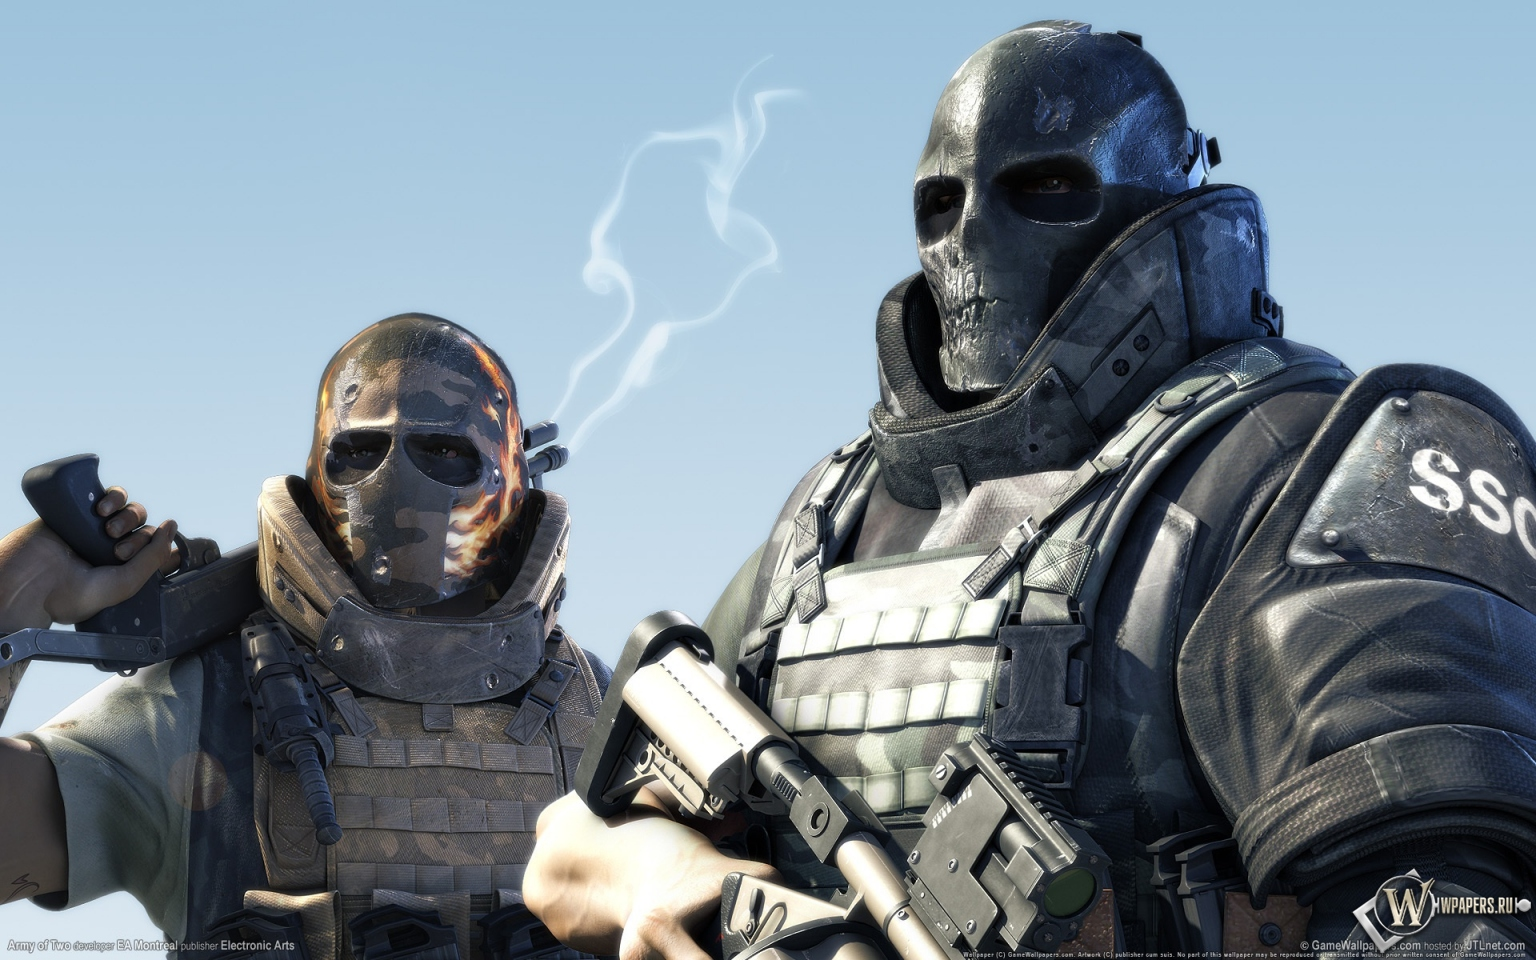 Army of two оружие солдаты маски army of two